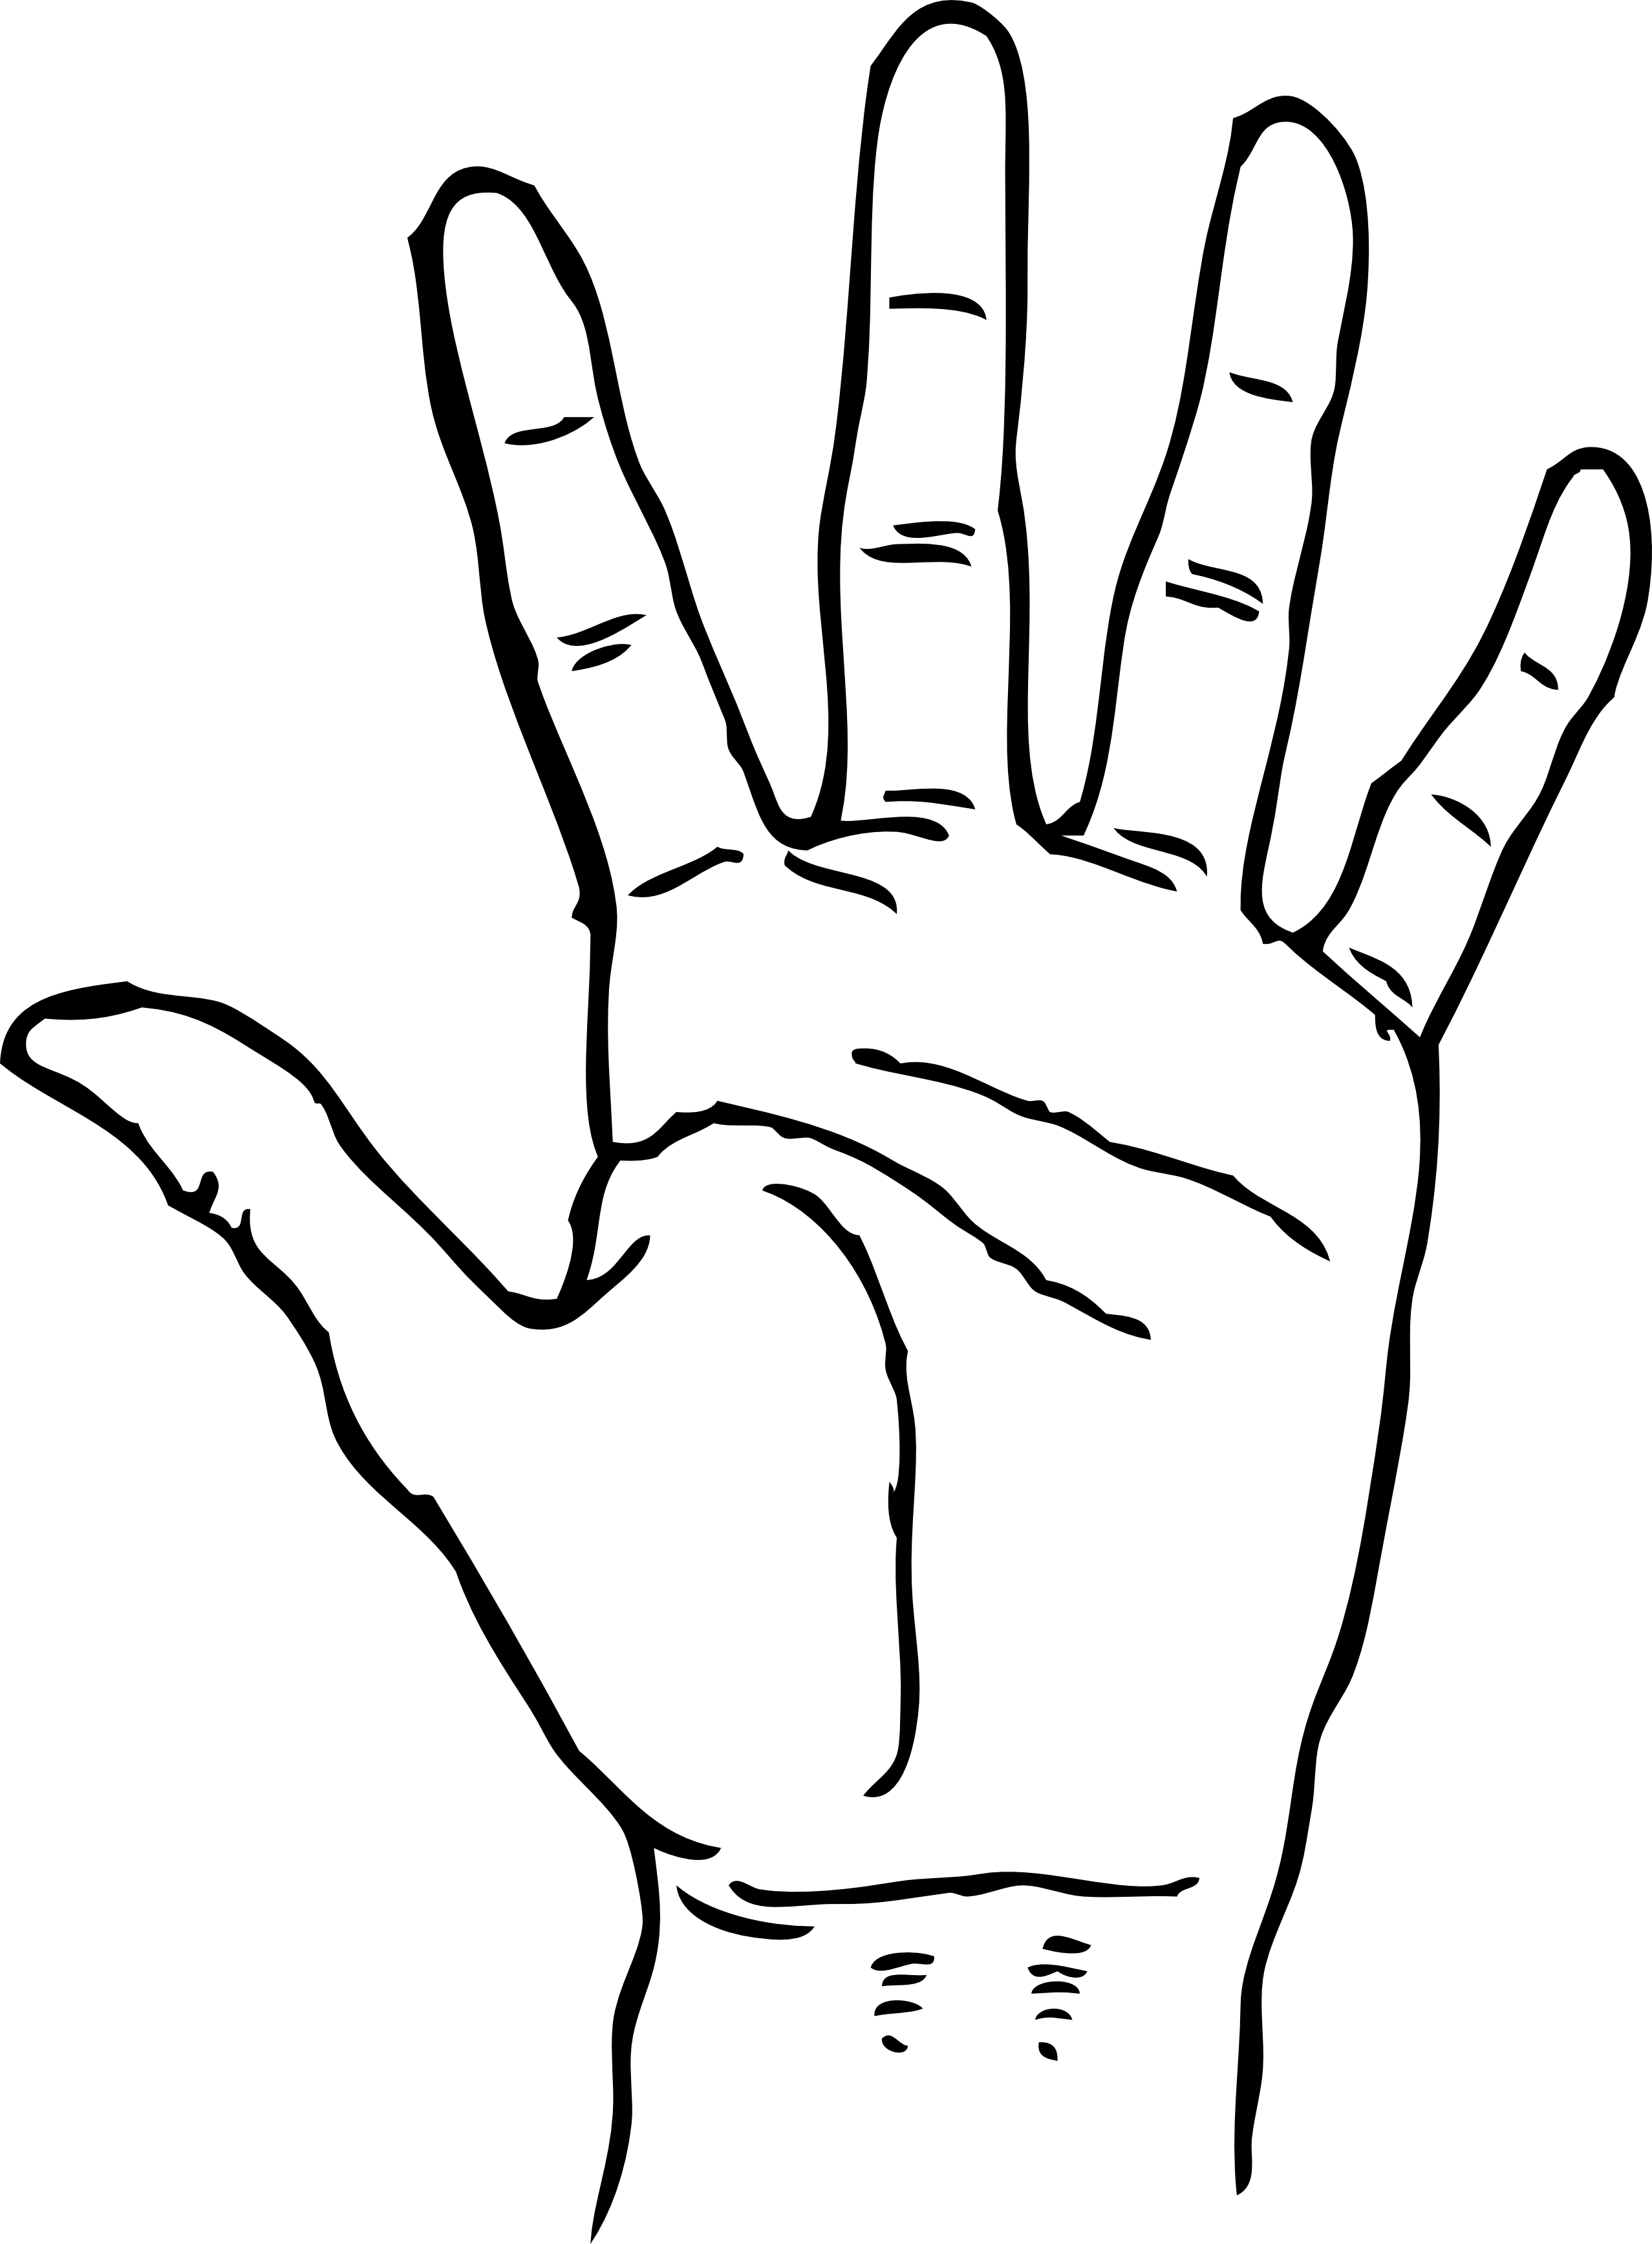 Hand Palm Facing Out Black White Line Art Coloring